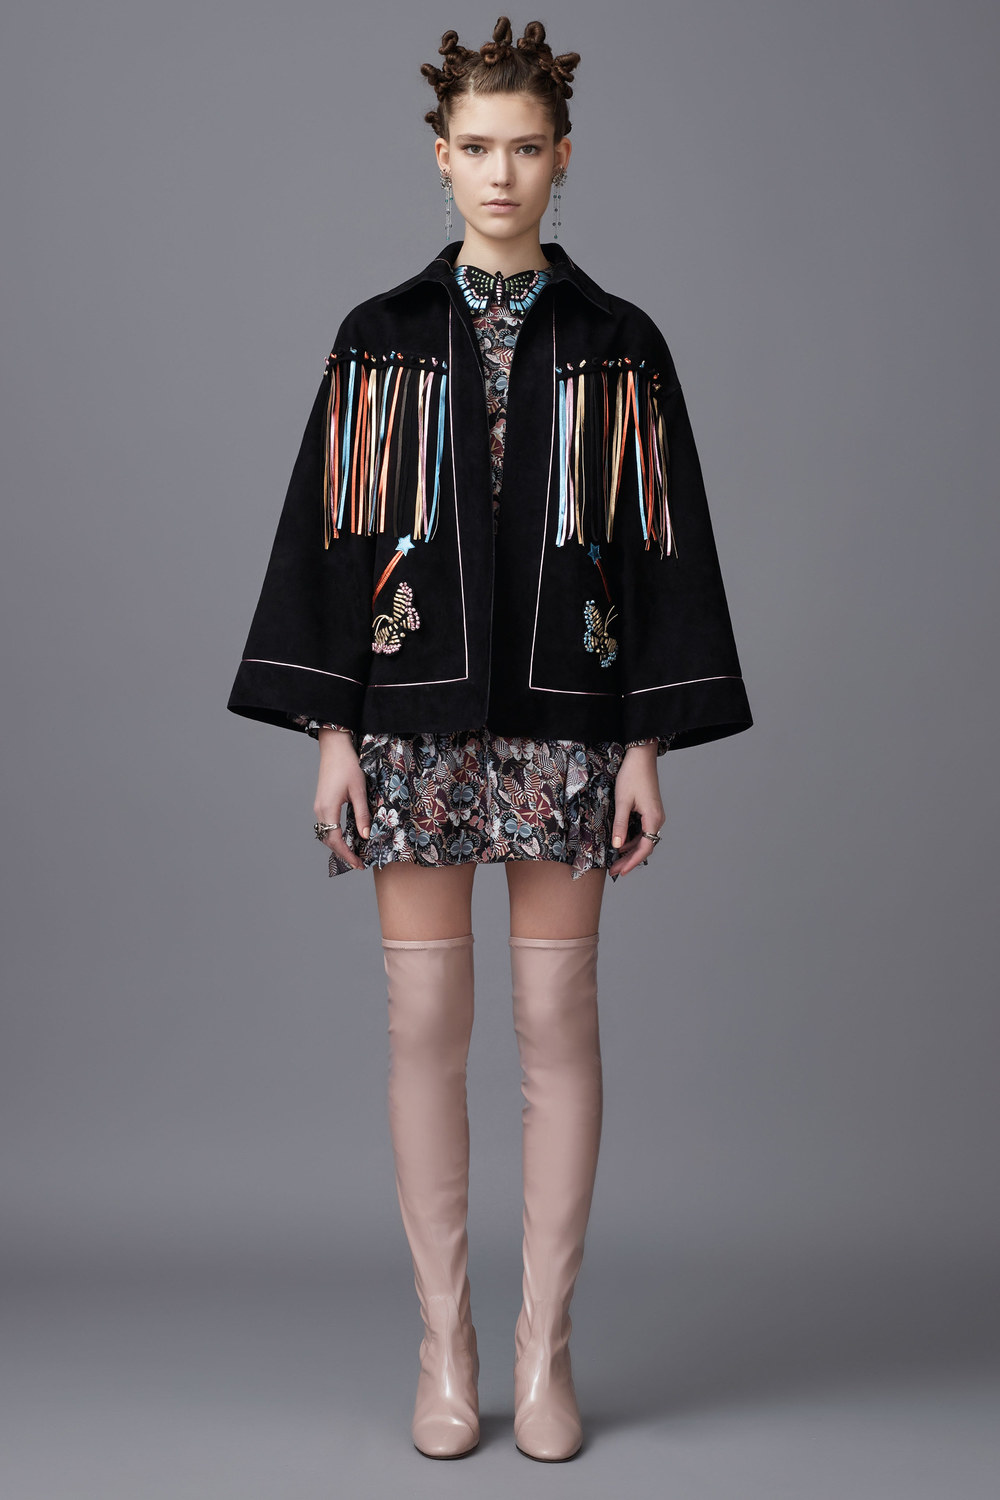 valentino-pre-fall-2016-lookbook-35.jpg